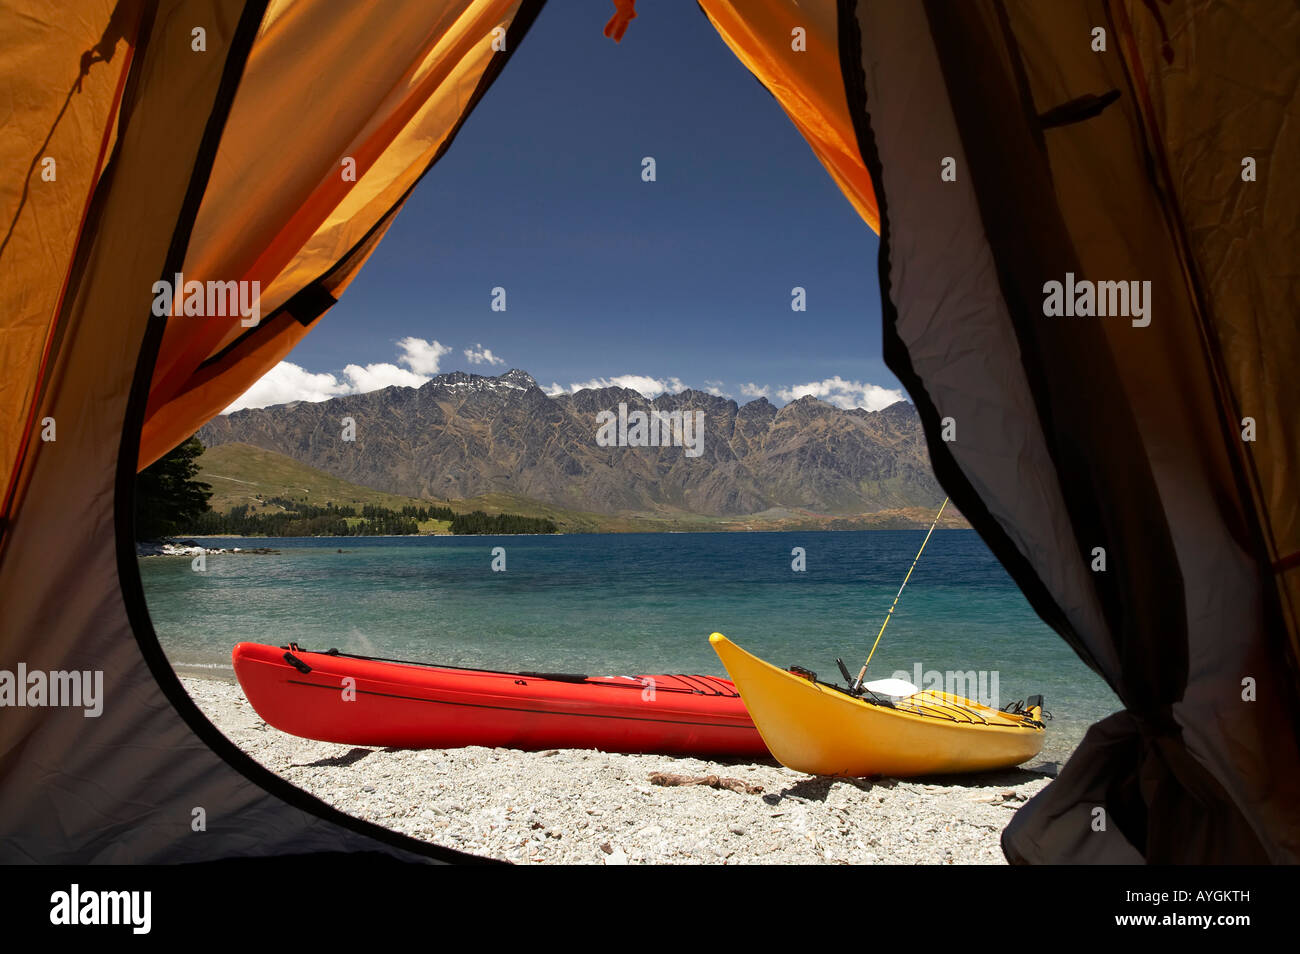 Tent Kayaks and The Remarkables Lake Wakatipu Queenstown South Island New Zealand & Tent Kayaks and The Remarkables Lake Wakatipu Queenstown South ...